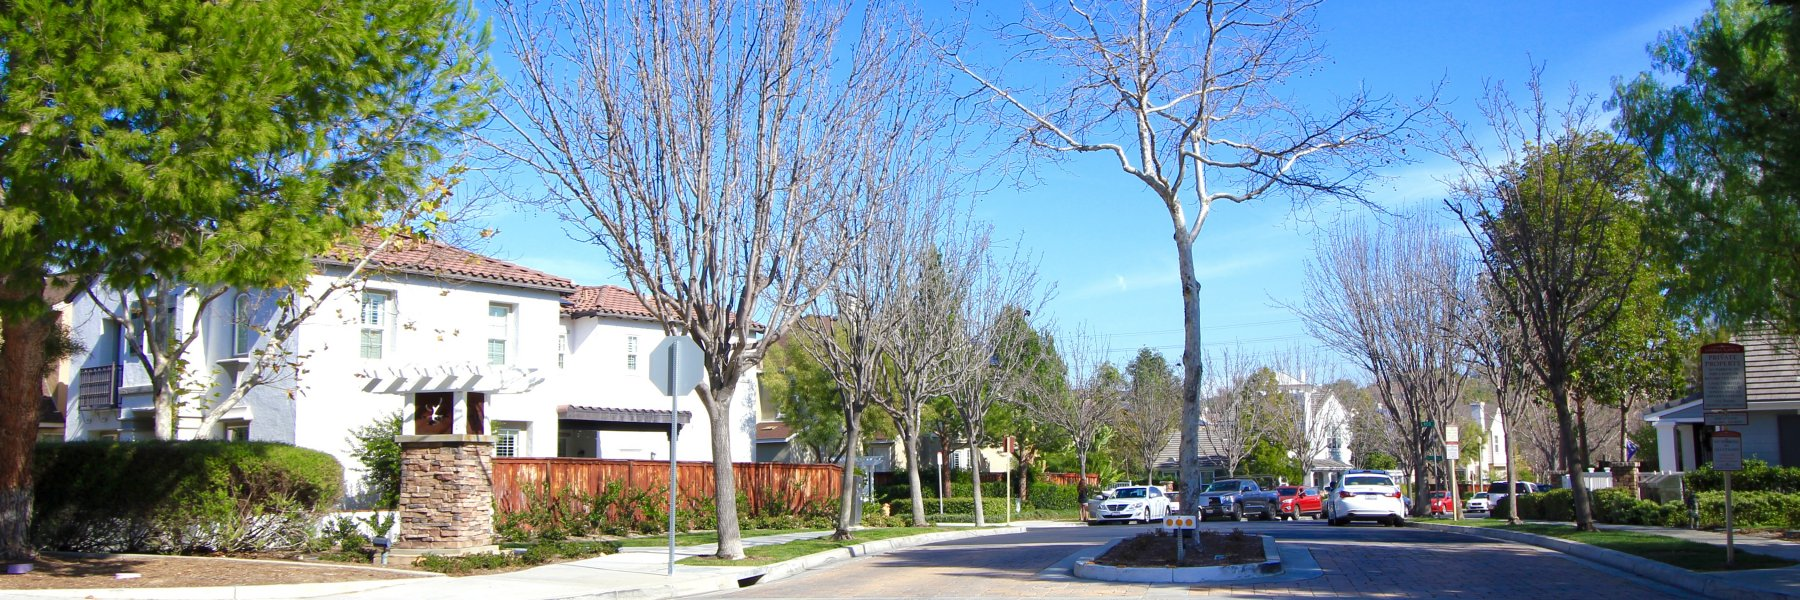 Tarleton is a community of homes in Ladera Ranch California